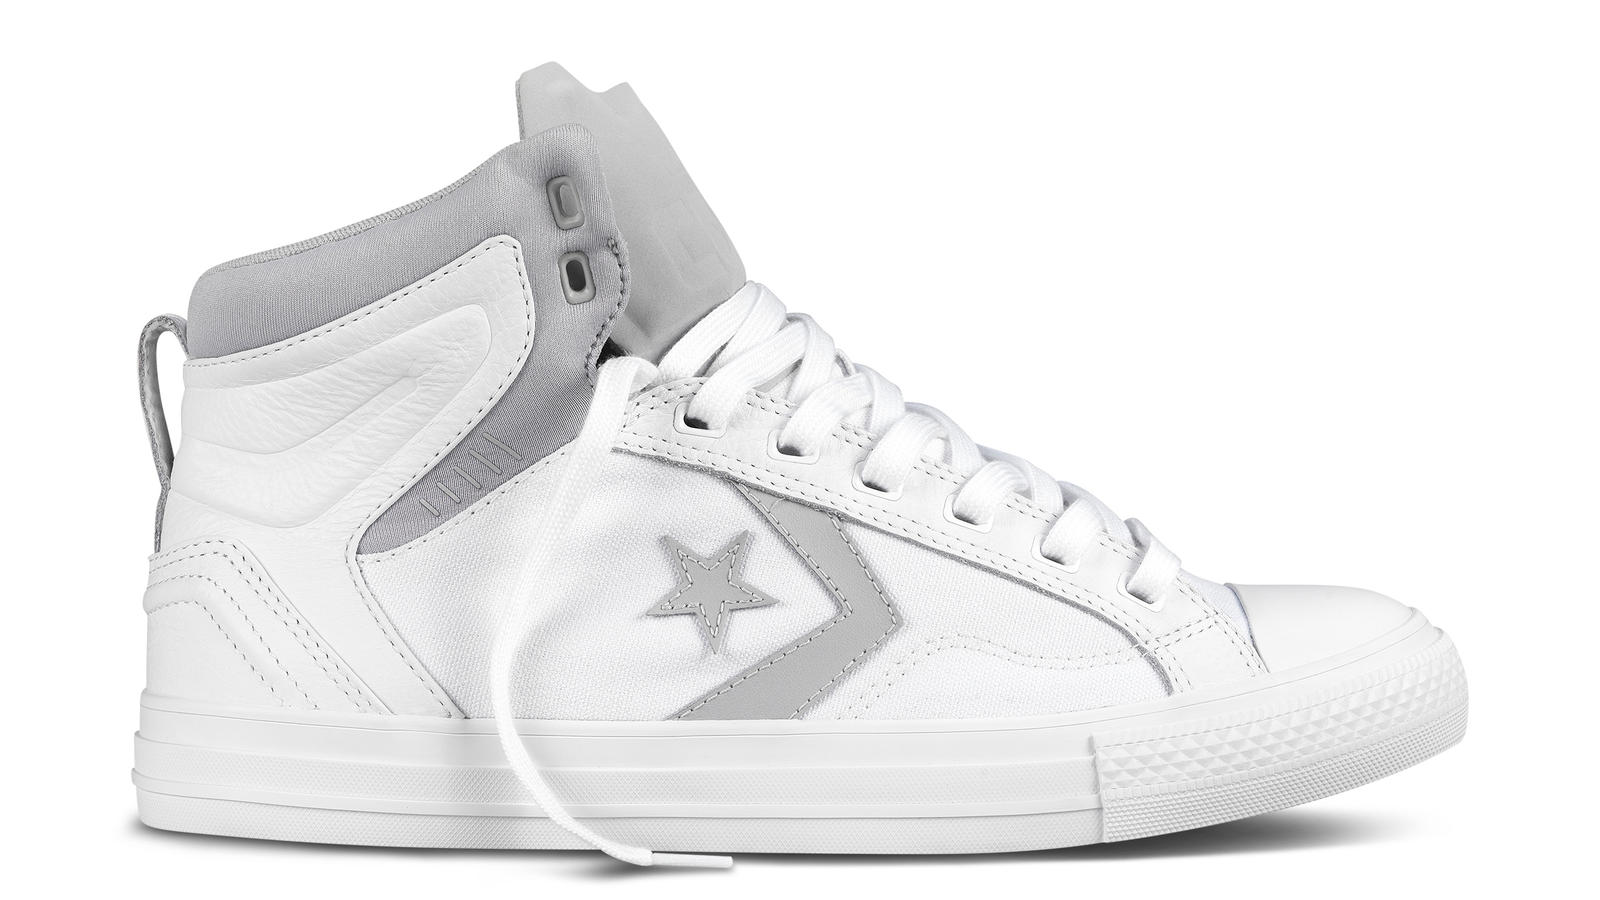 Porque Maravilla programa  Converse Announces Spring 2014 CONS Collection - Nike News